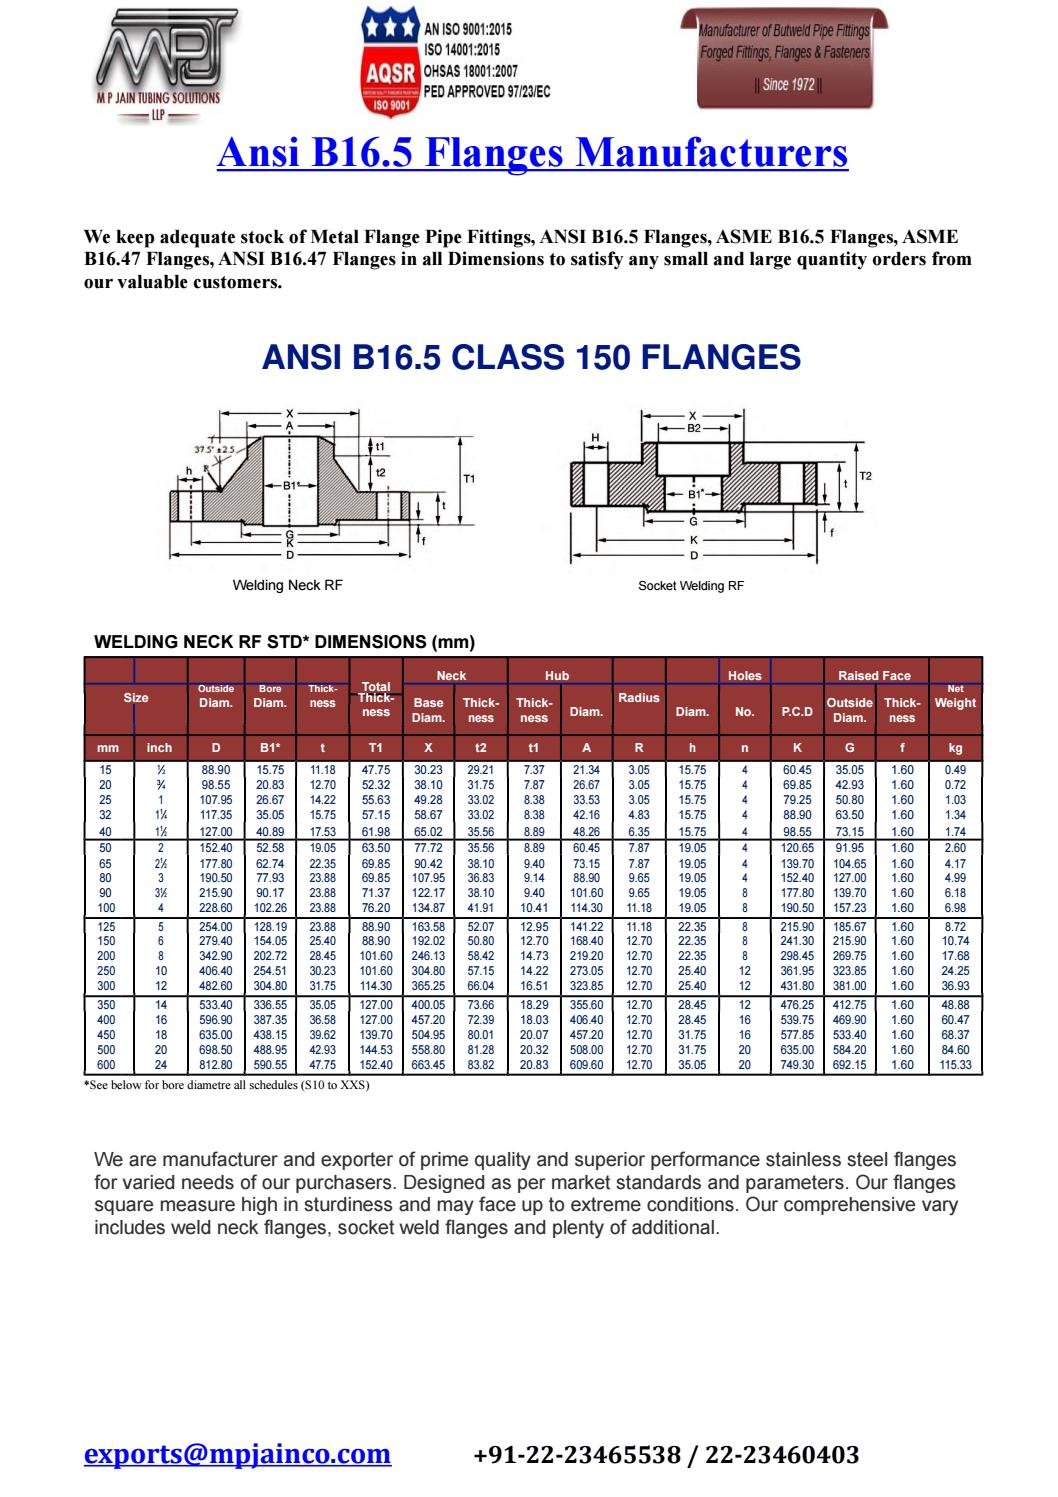 ansi b16 5 flanges manufacturers by M P JAIN TUBING SOLUTIONS LLP